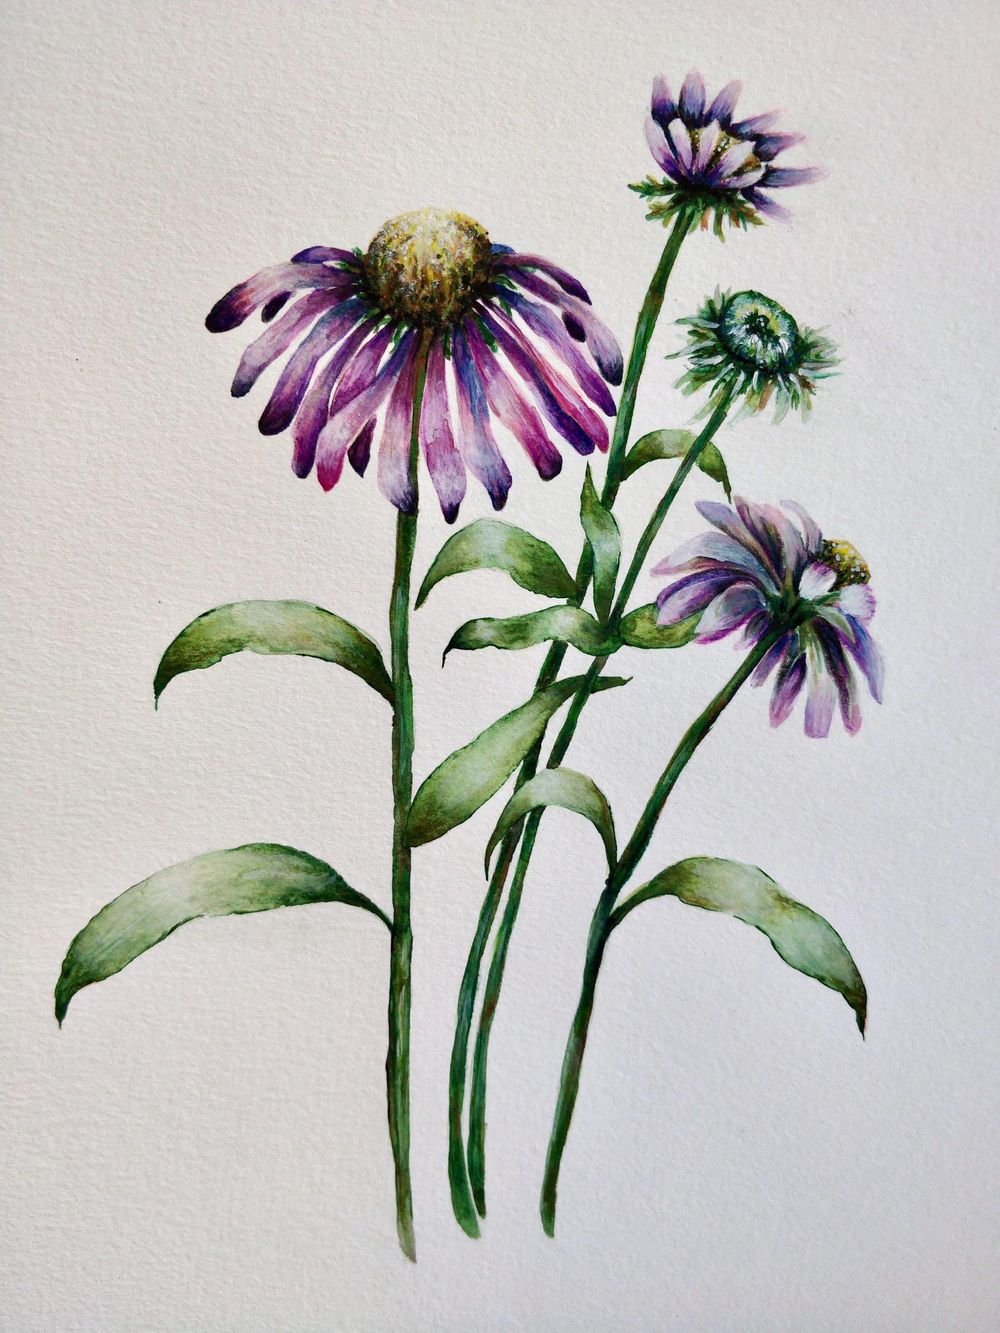 Paint with Me: Vintage-Inspired Botanical Illustration Using Mixed Media - image 6 - student project